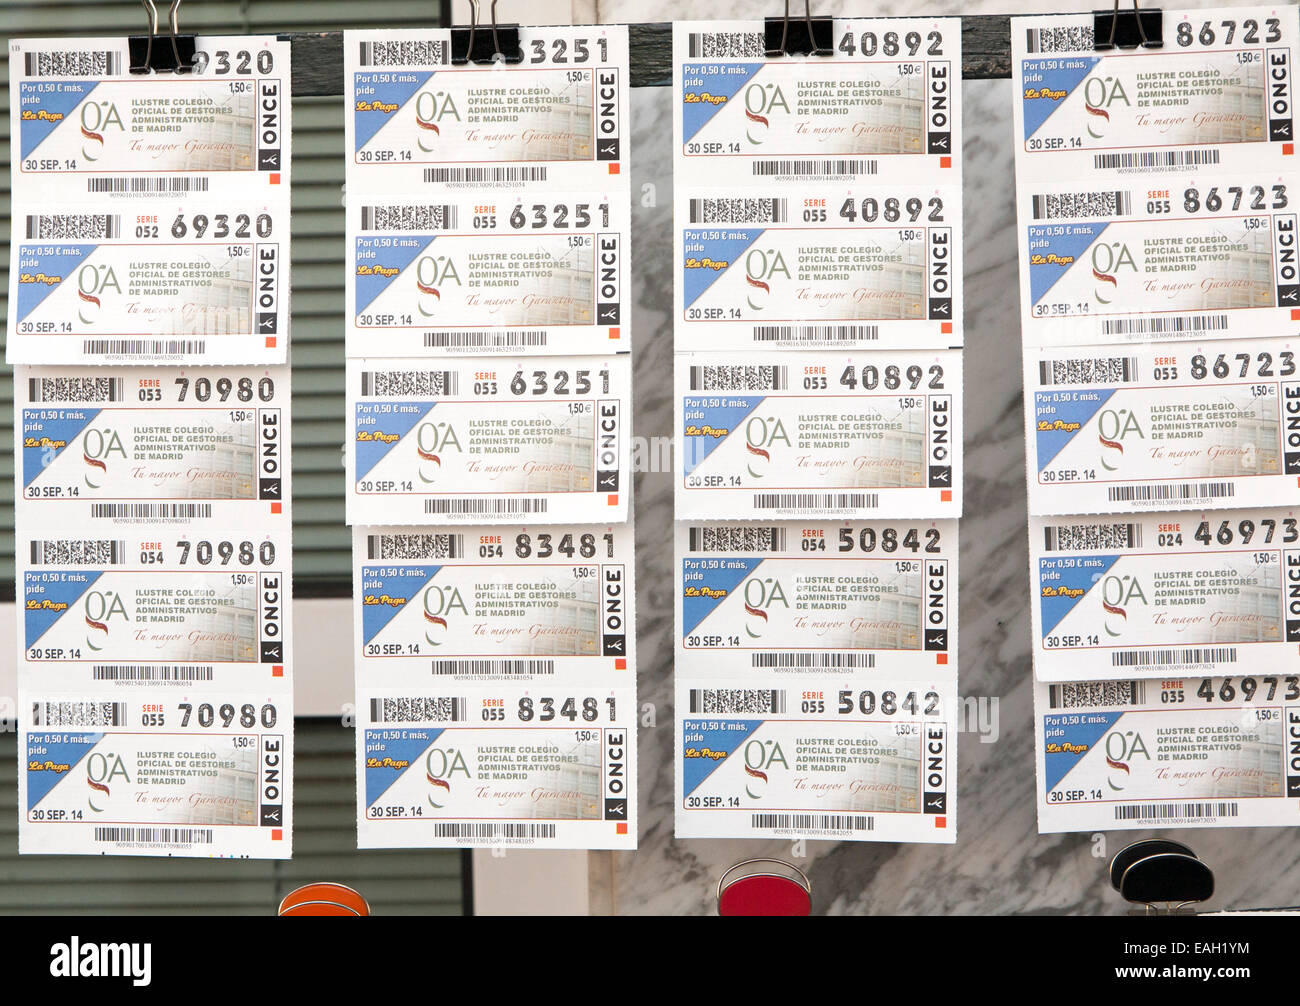 Lottery Tickets Stock Photos & Lottery Tickets Stock Images